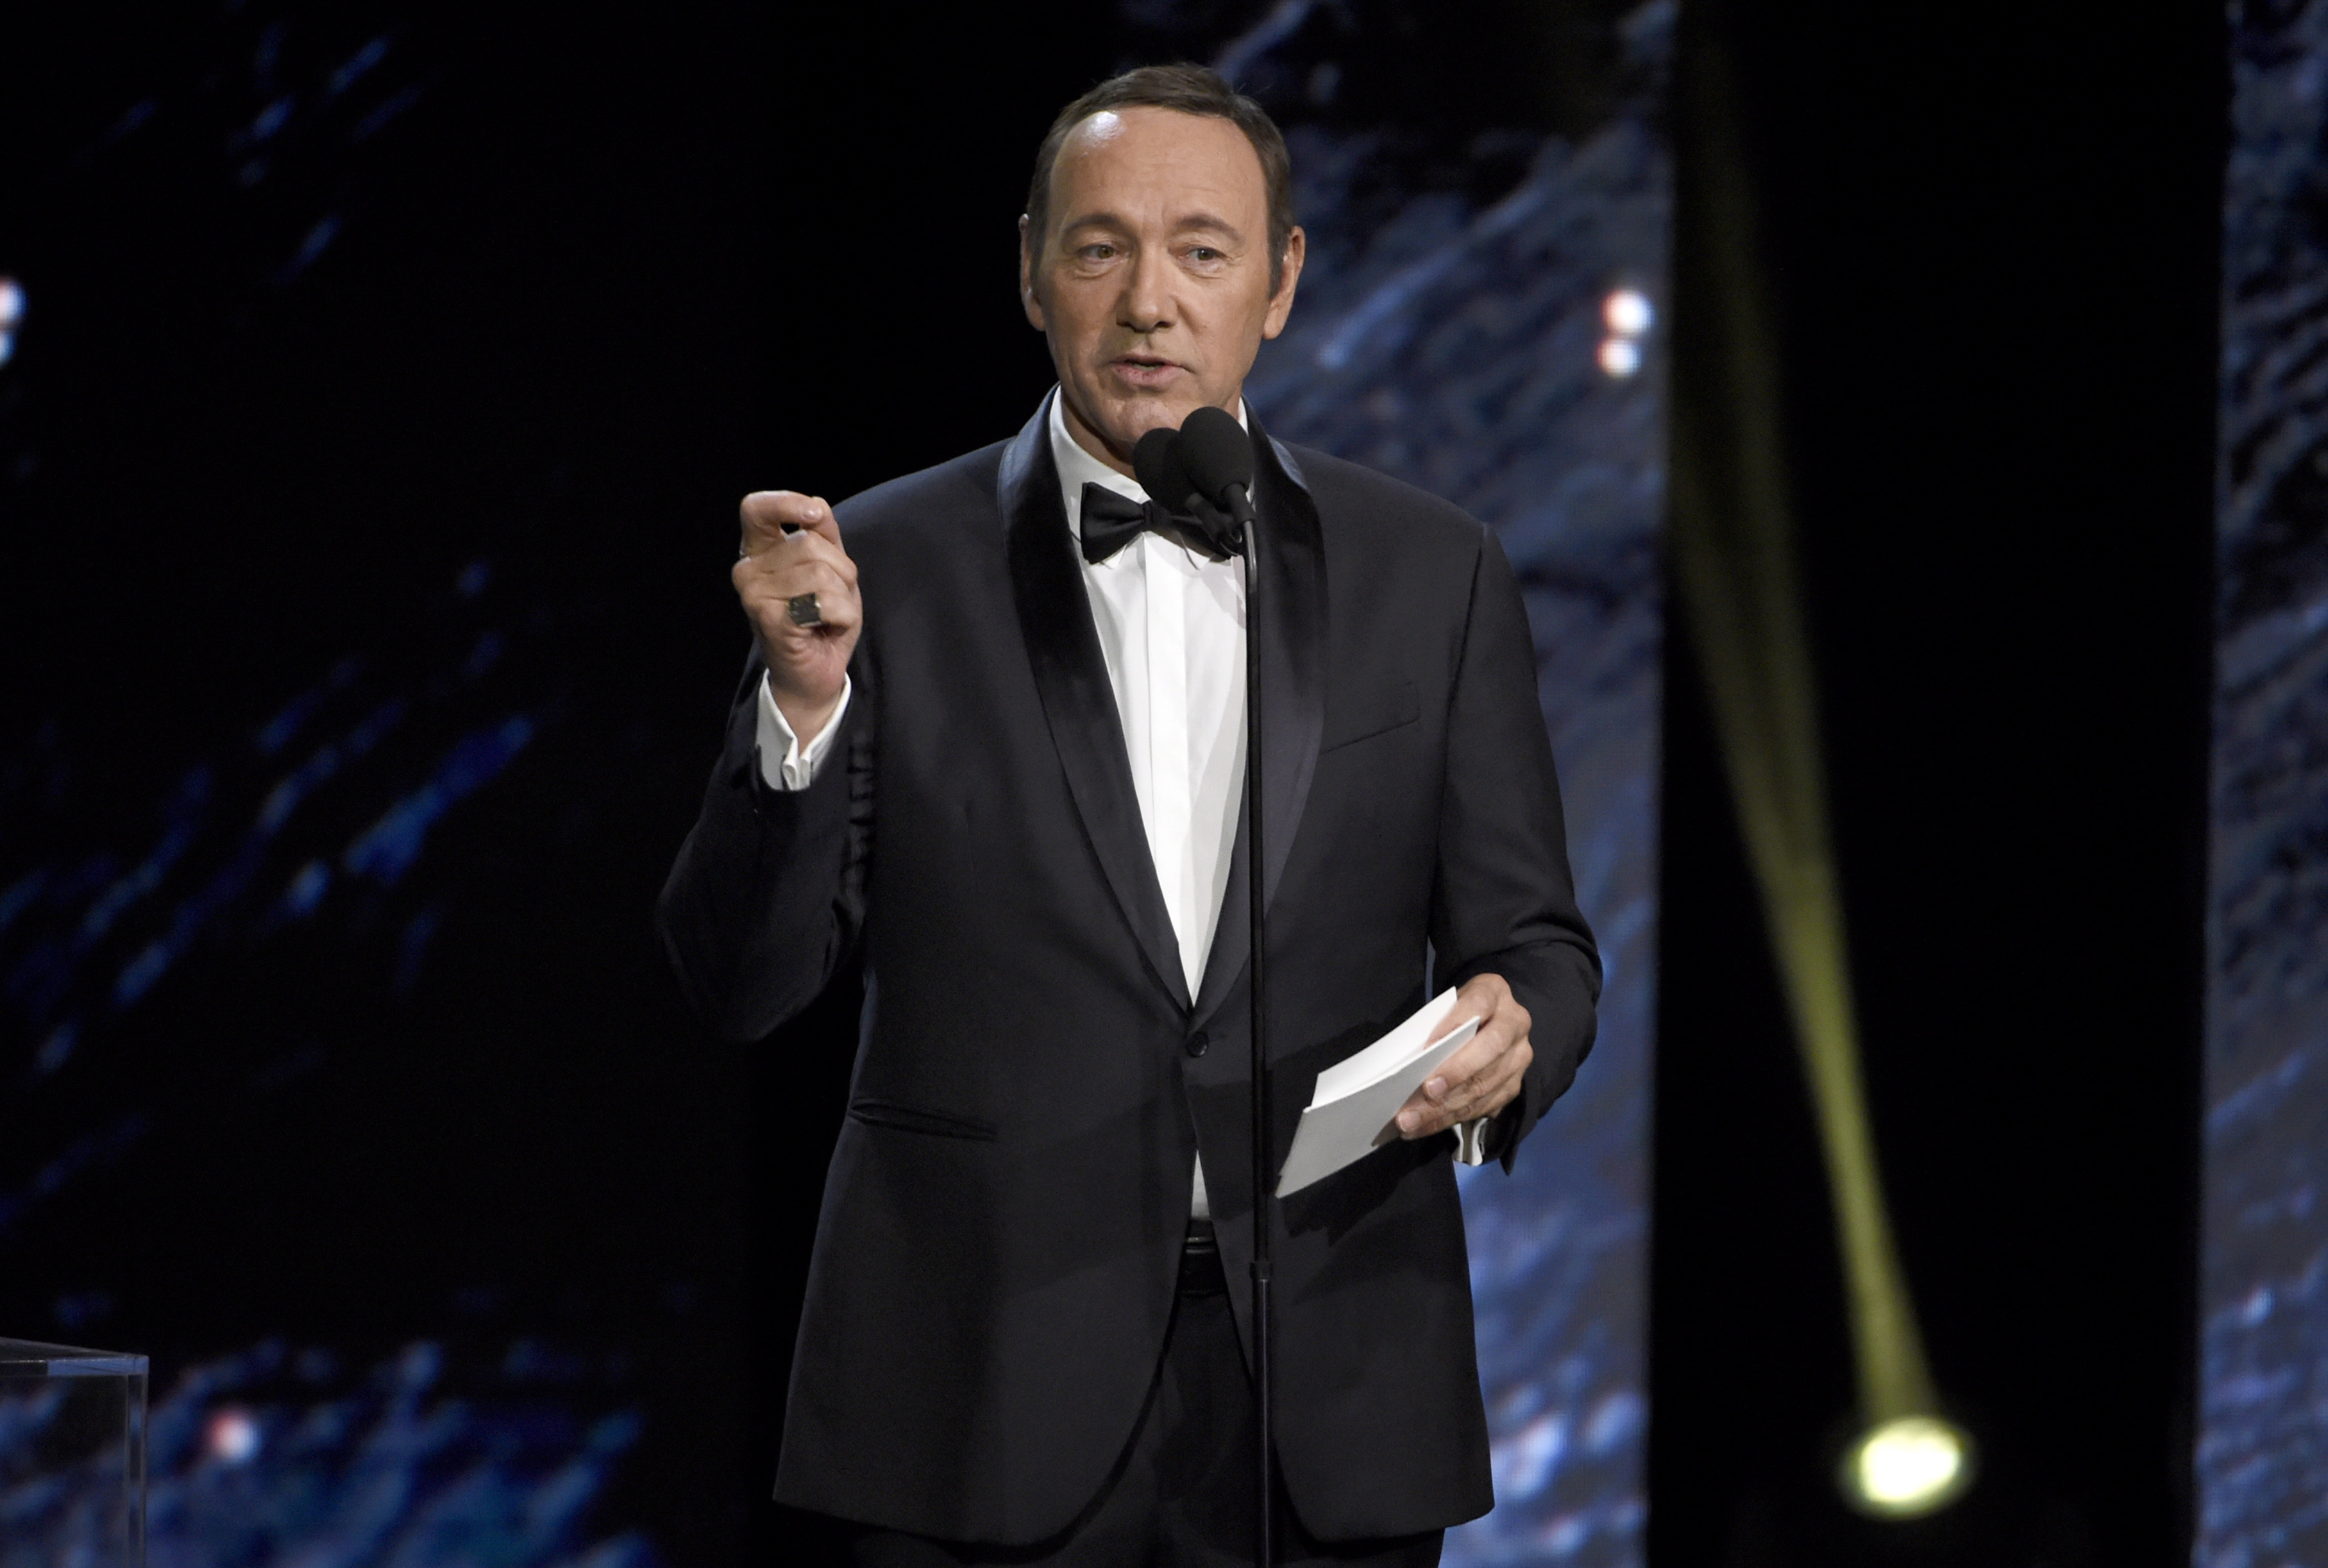 Kevin Spacey Reprises House of Cards Role In Weird New Video